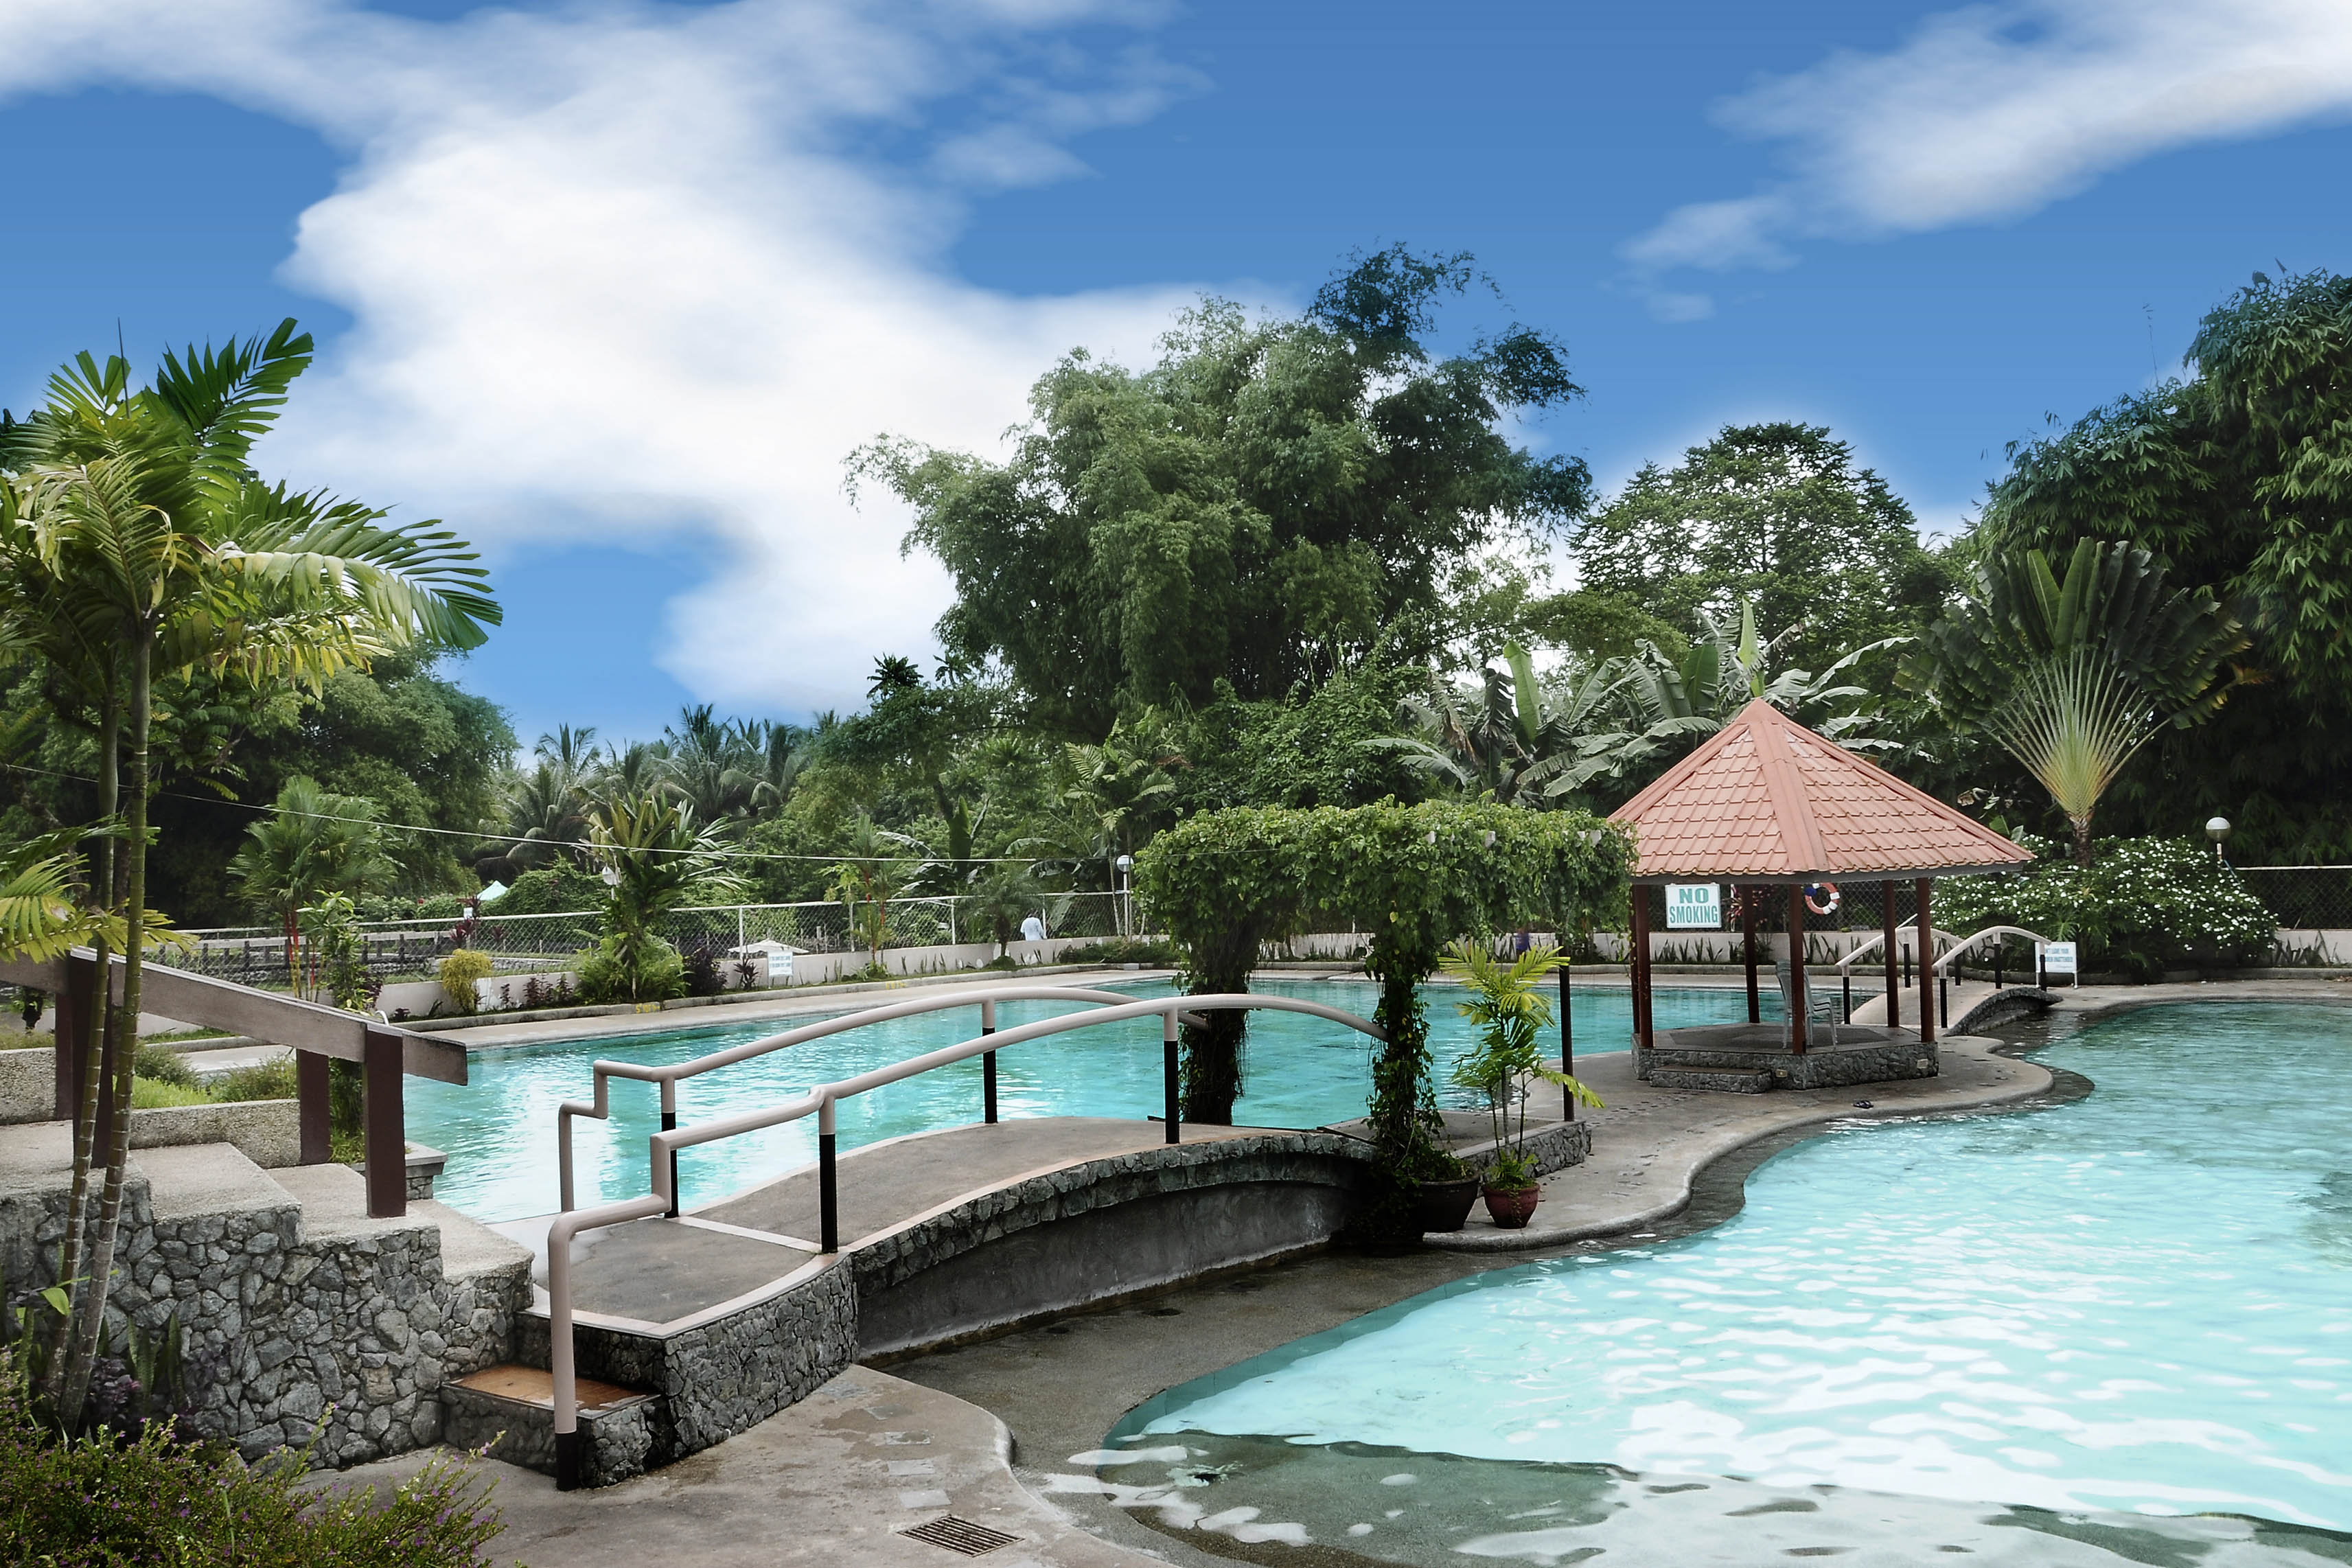 Dolores Farm Resort Dolores Hotels And Resorts Best Tourist Hotels And Resorts Attraction In